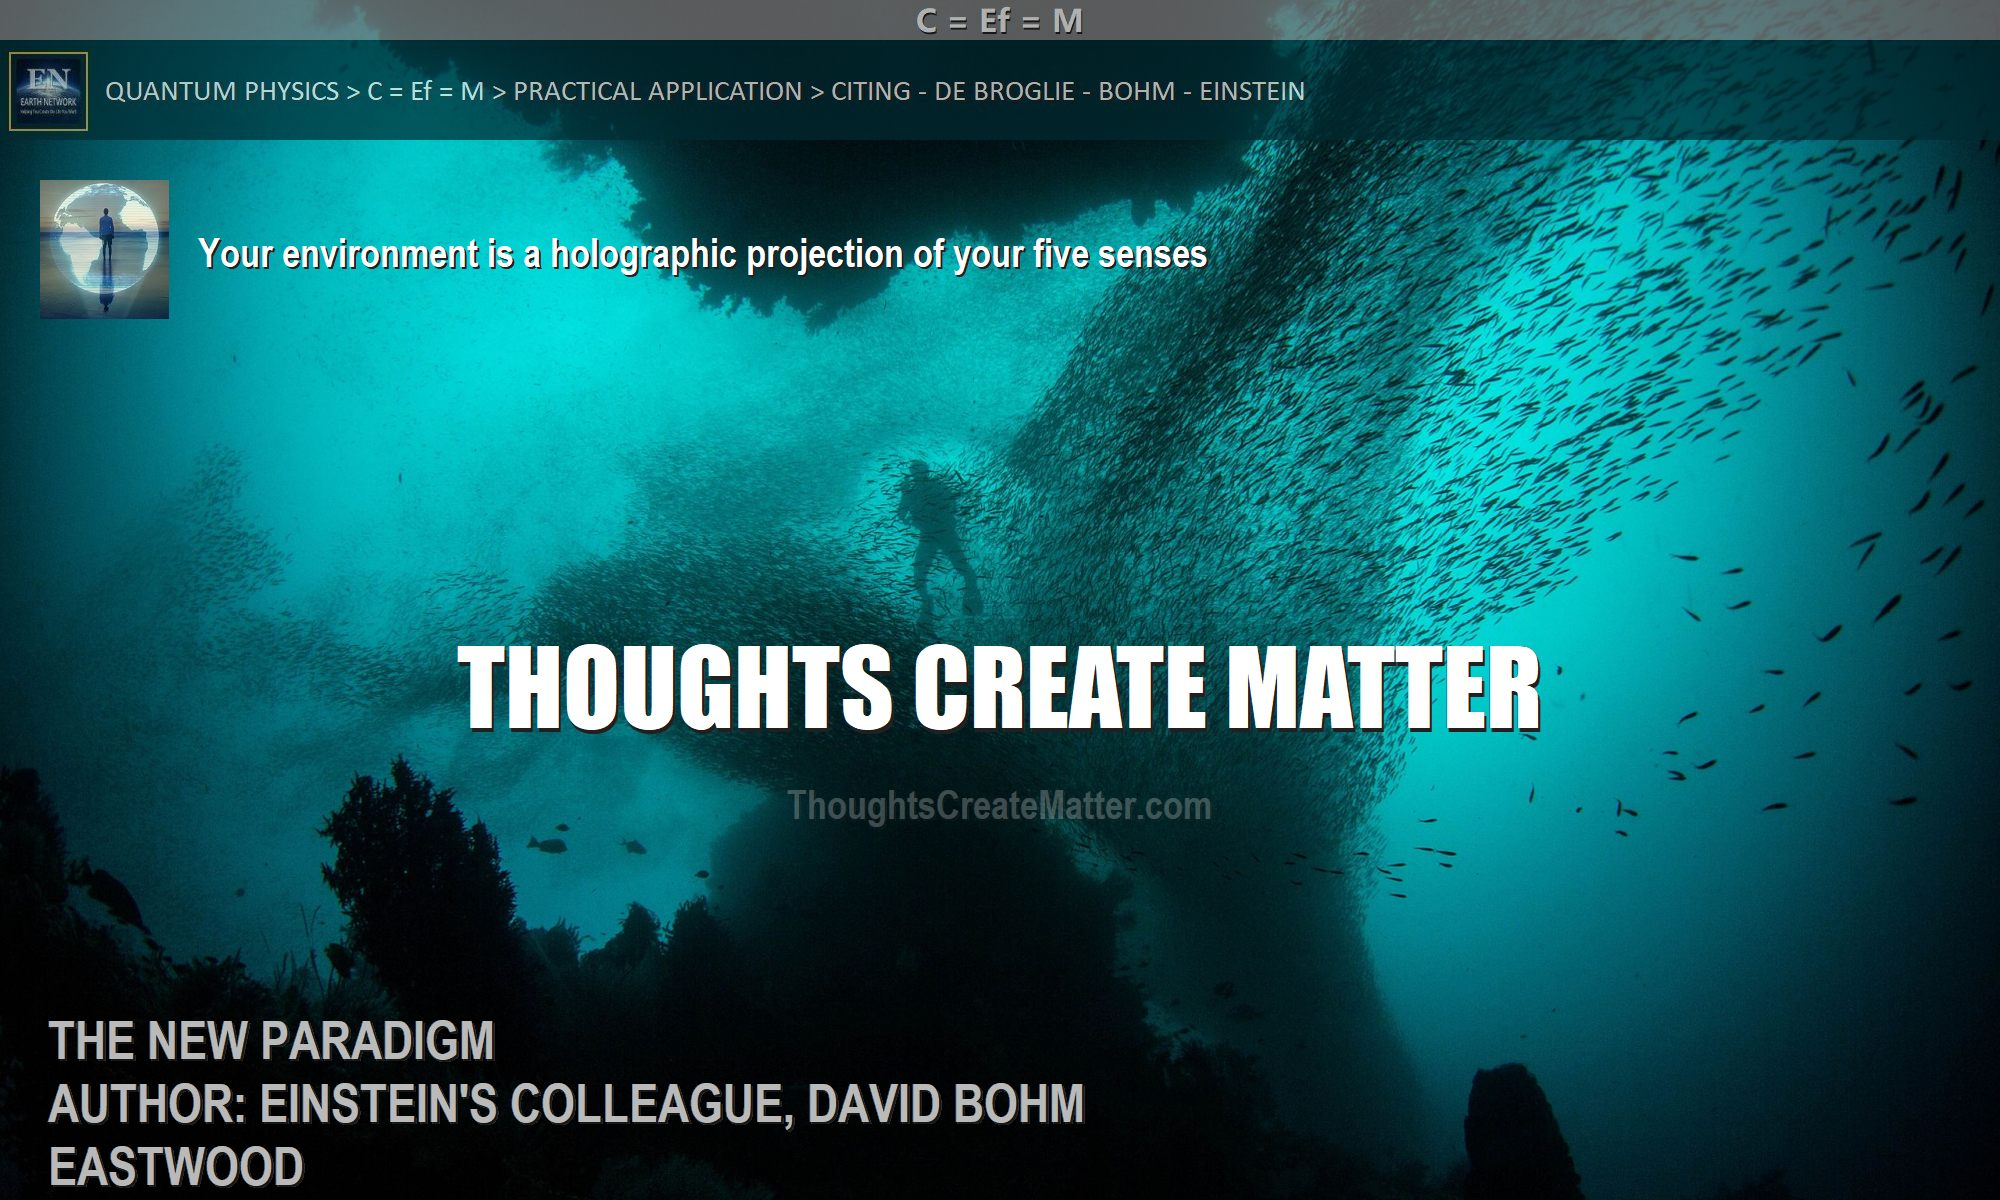 Man-depicts-question-Do-thoughts-create-matter-can-consciousness-creates-matter-reality-scientific-facts-proof-evidence